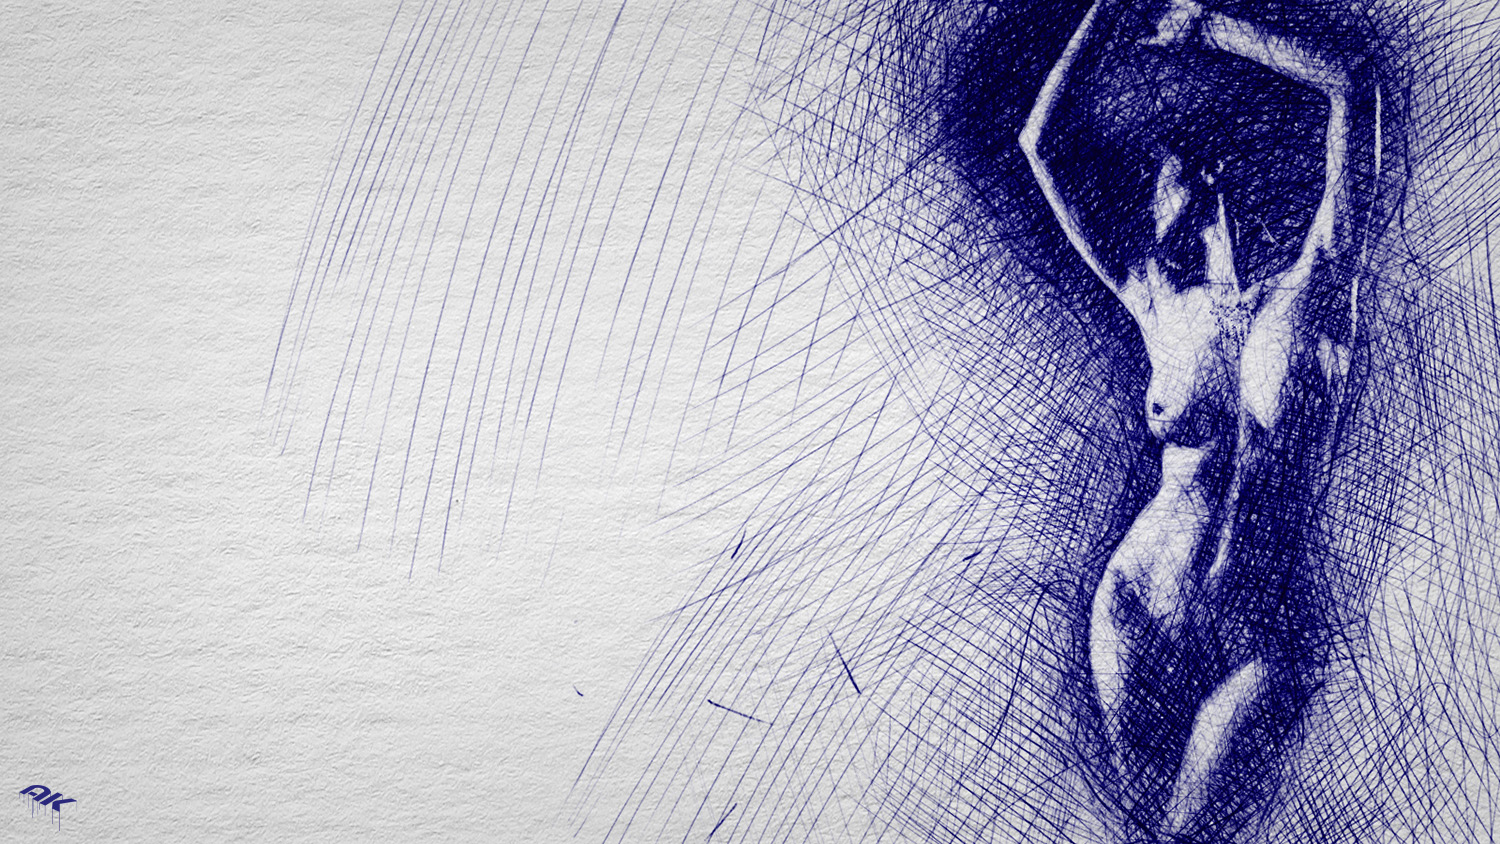 life-drawing-series-5-image-3-copyright-andrew-knutt